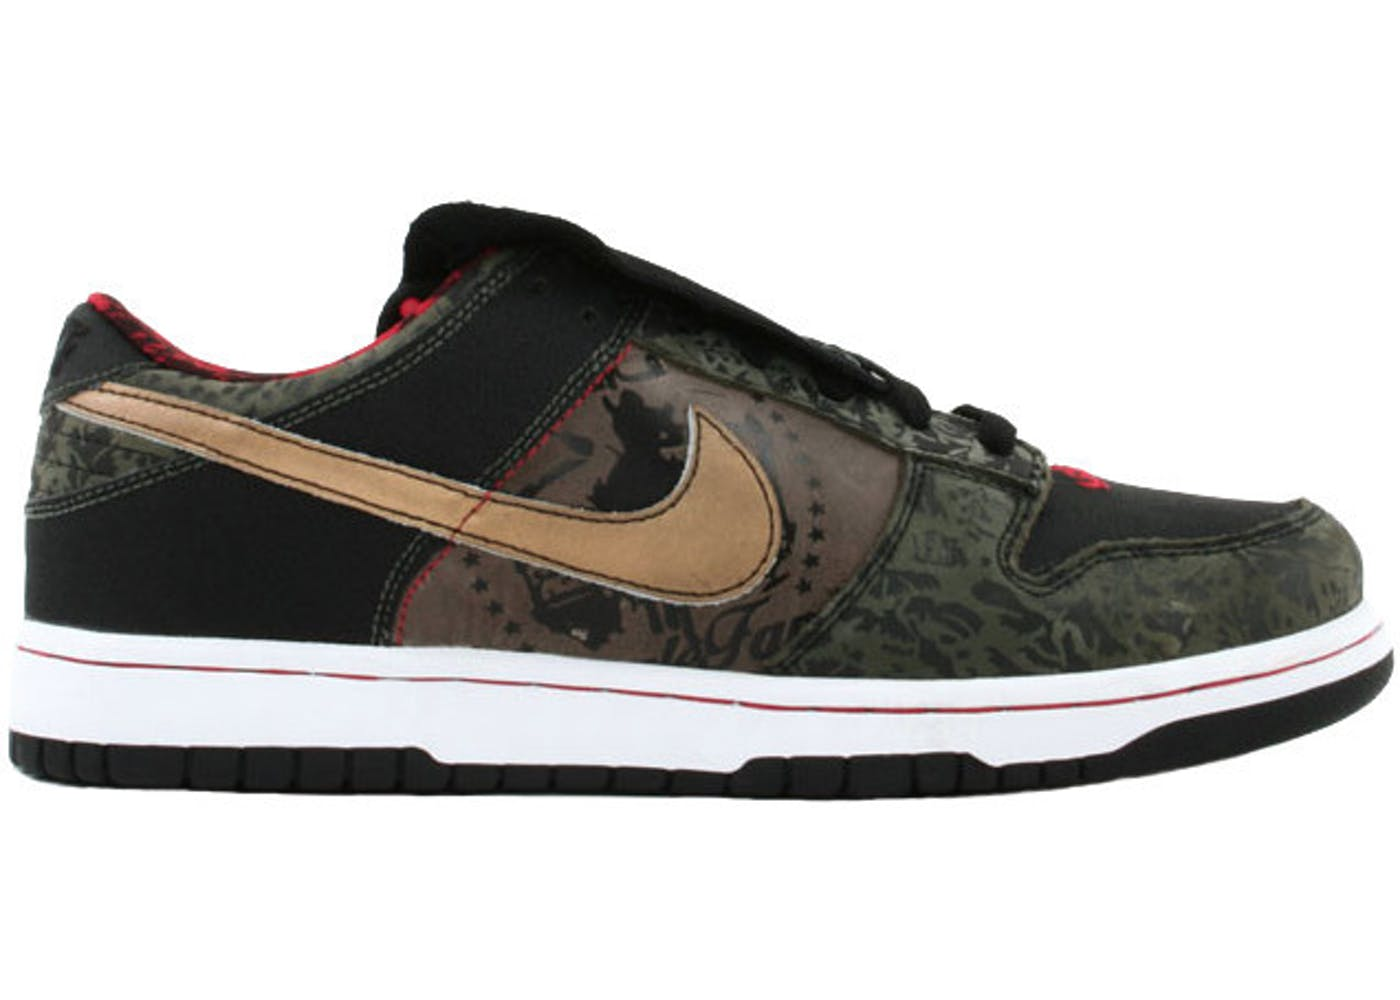 super popular ce1ad f3d88 nike dunk sb low sbtg